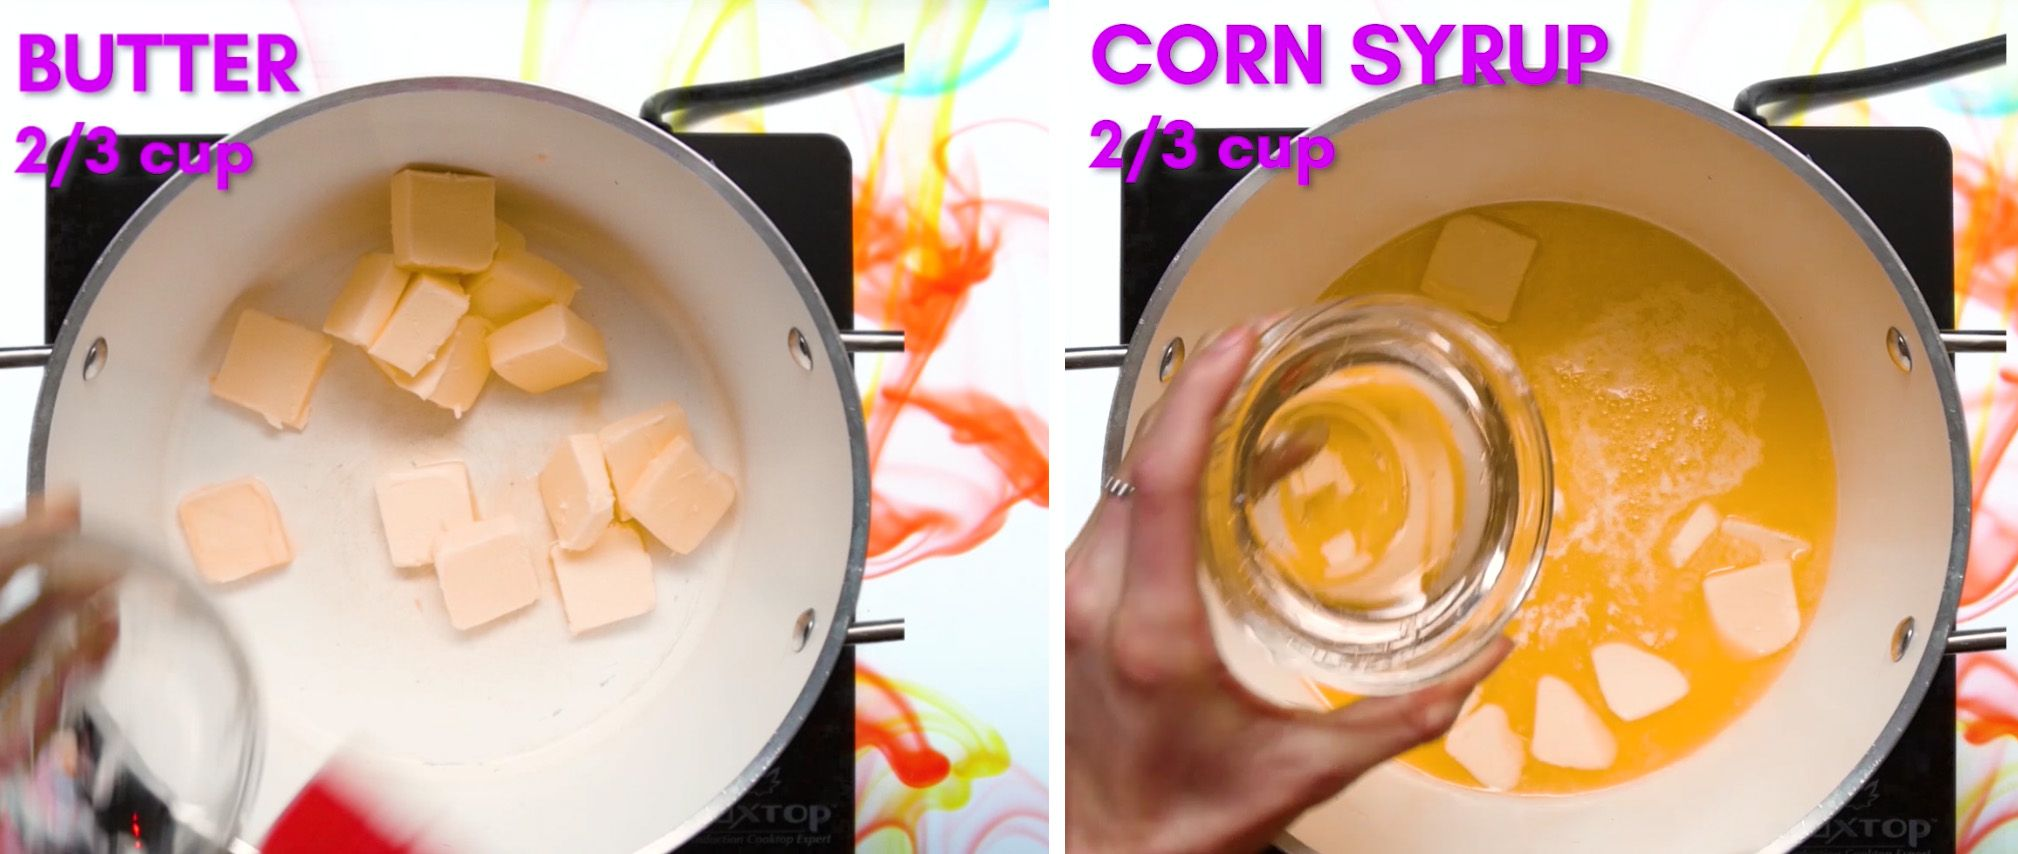 butter and corn syrup being poured into a white saucepan